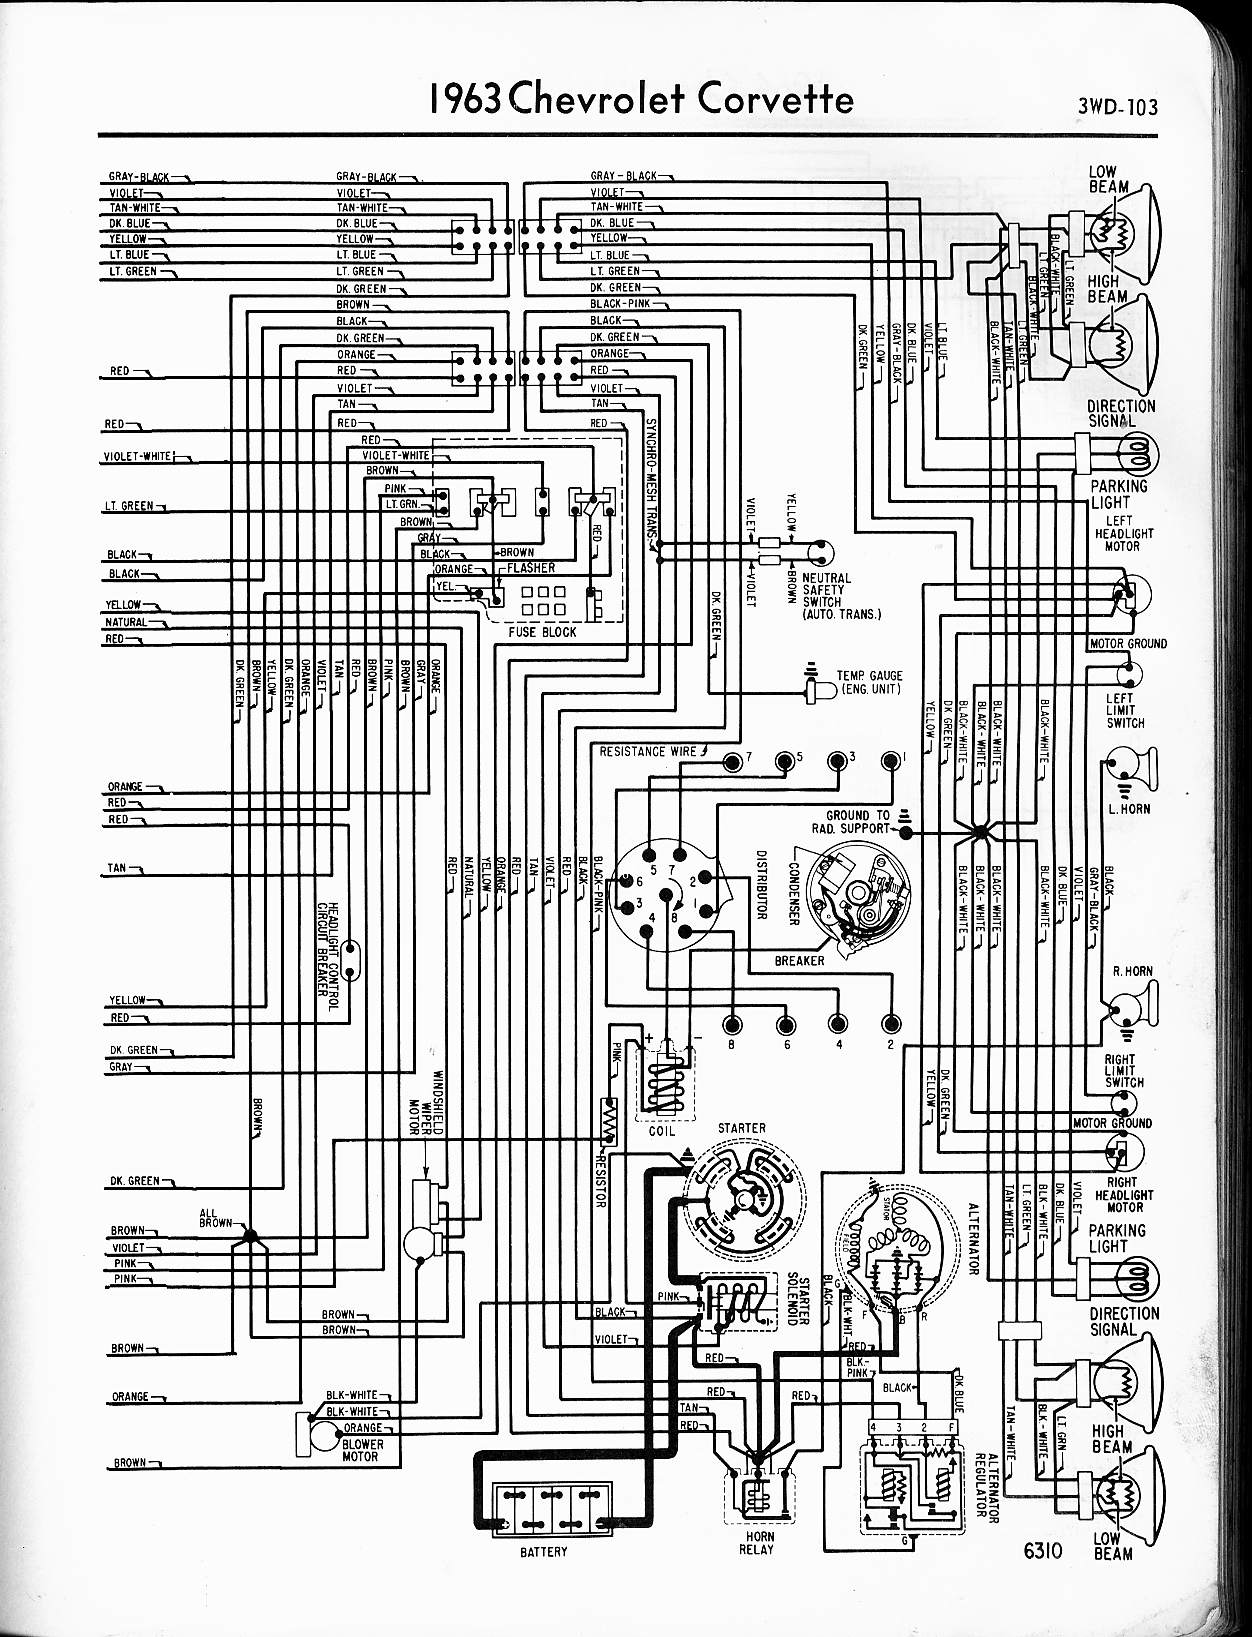 62 chevy corvette wiring diagram expert schematics diagram rh  atcobennettrecoveries com 1980 Corvette Battery Wiring Diagram 1985 Corvette  ECM Wiring ...